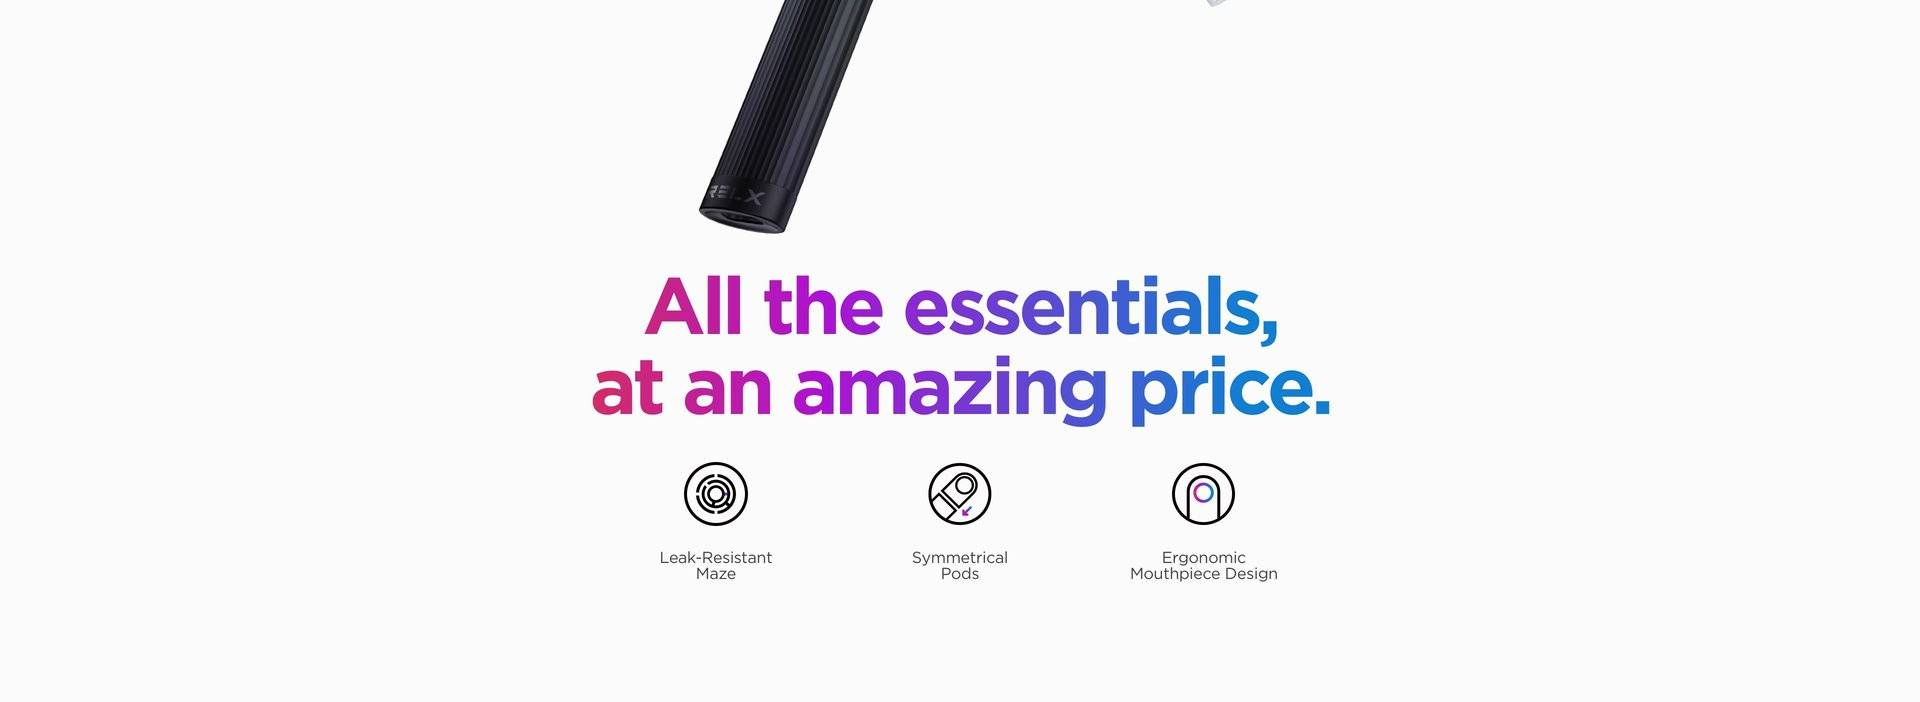 All Essential Devices are at an amazing price.